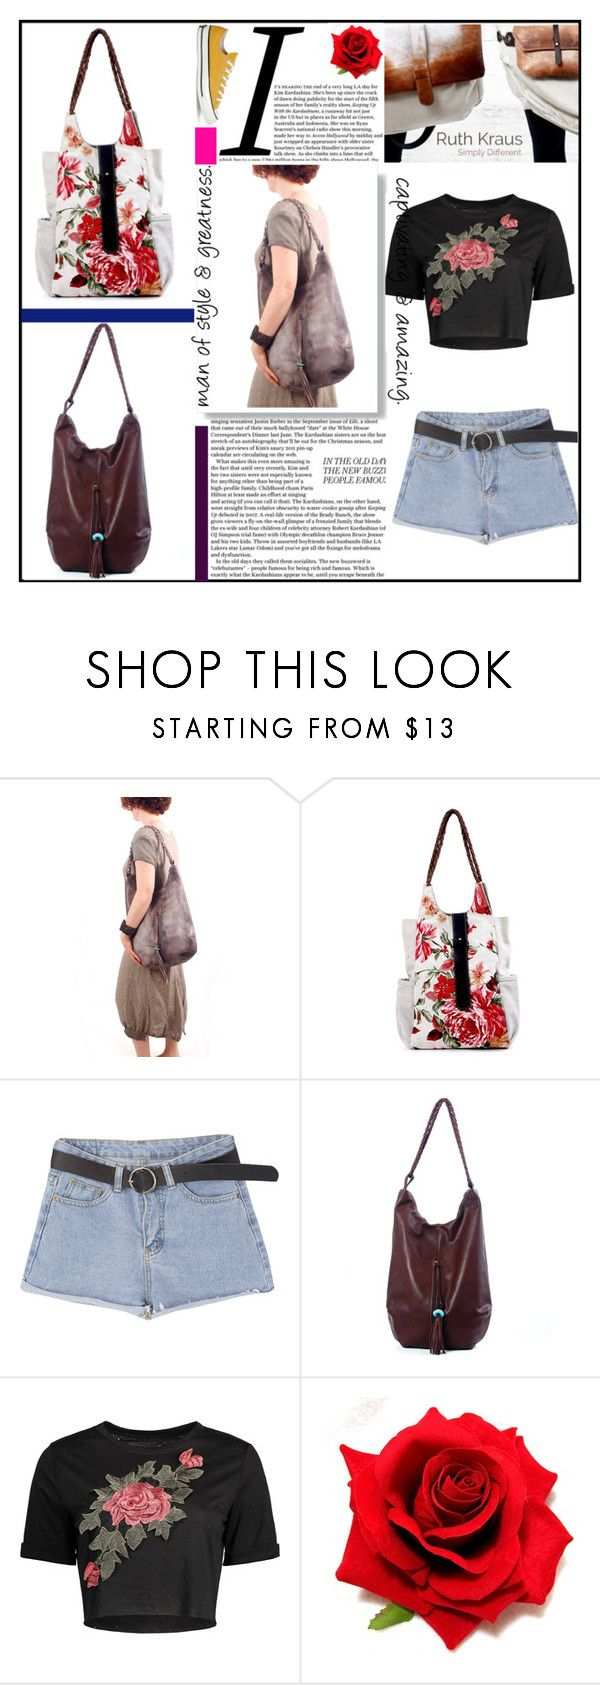 """""""Large RuthKraus bags"""" by zehrica-kukic ❤ liked on Polyvore featuring Converse"""